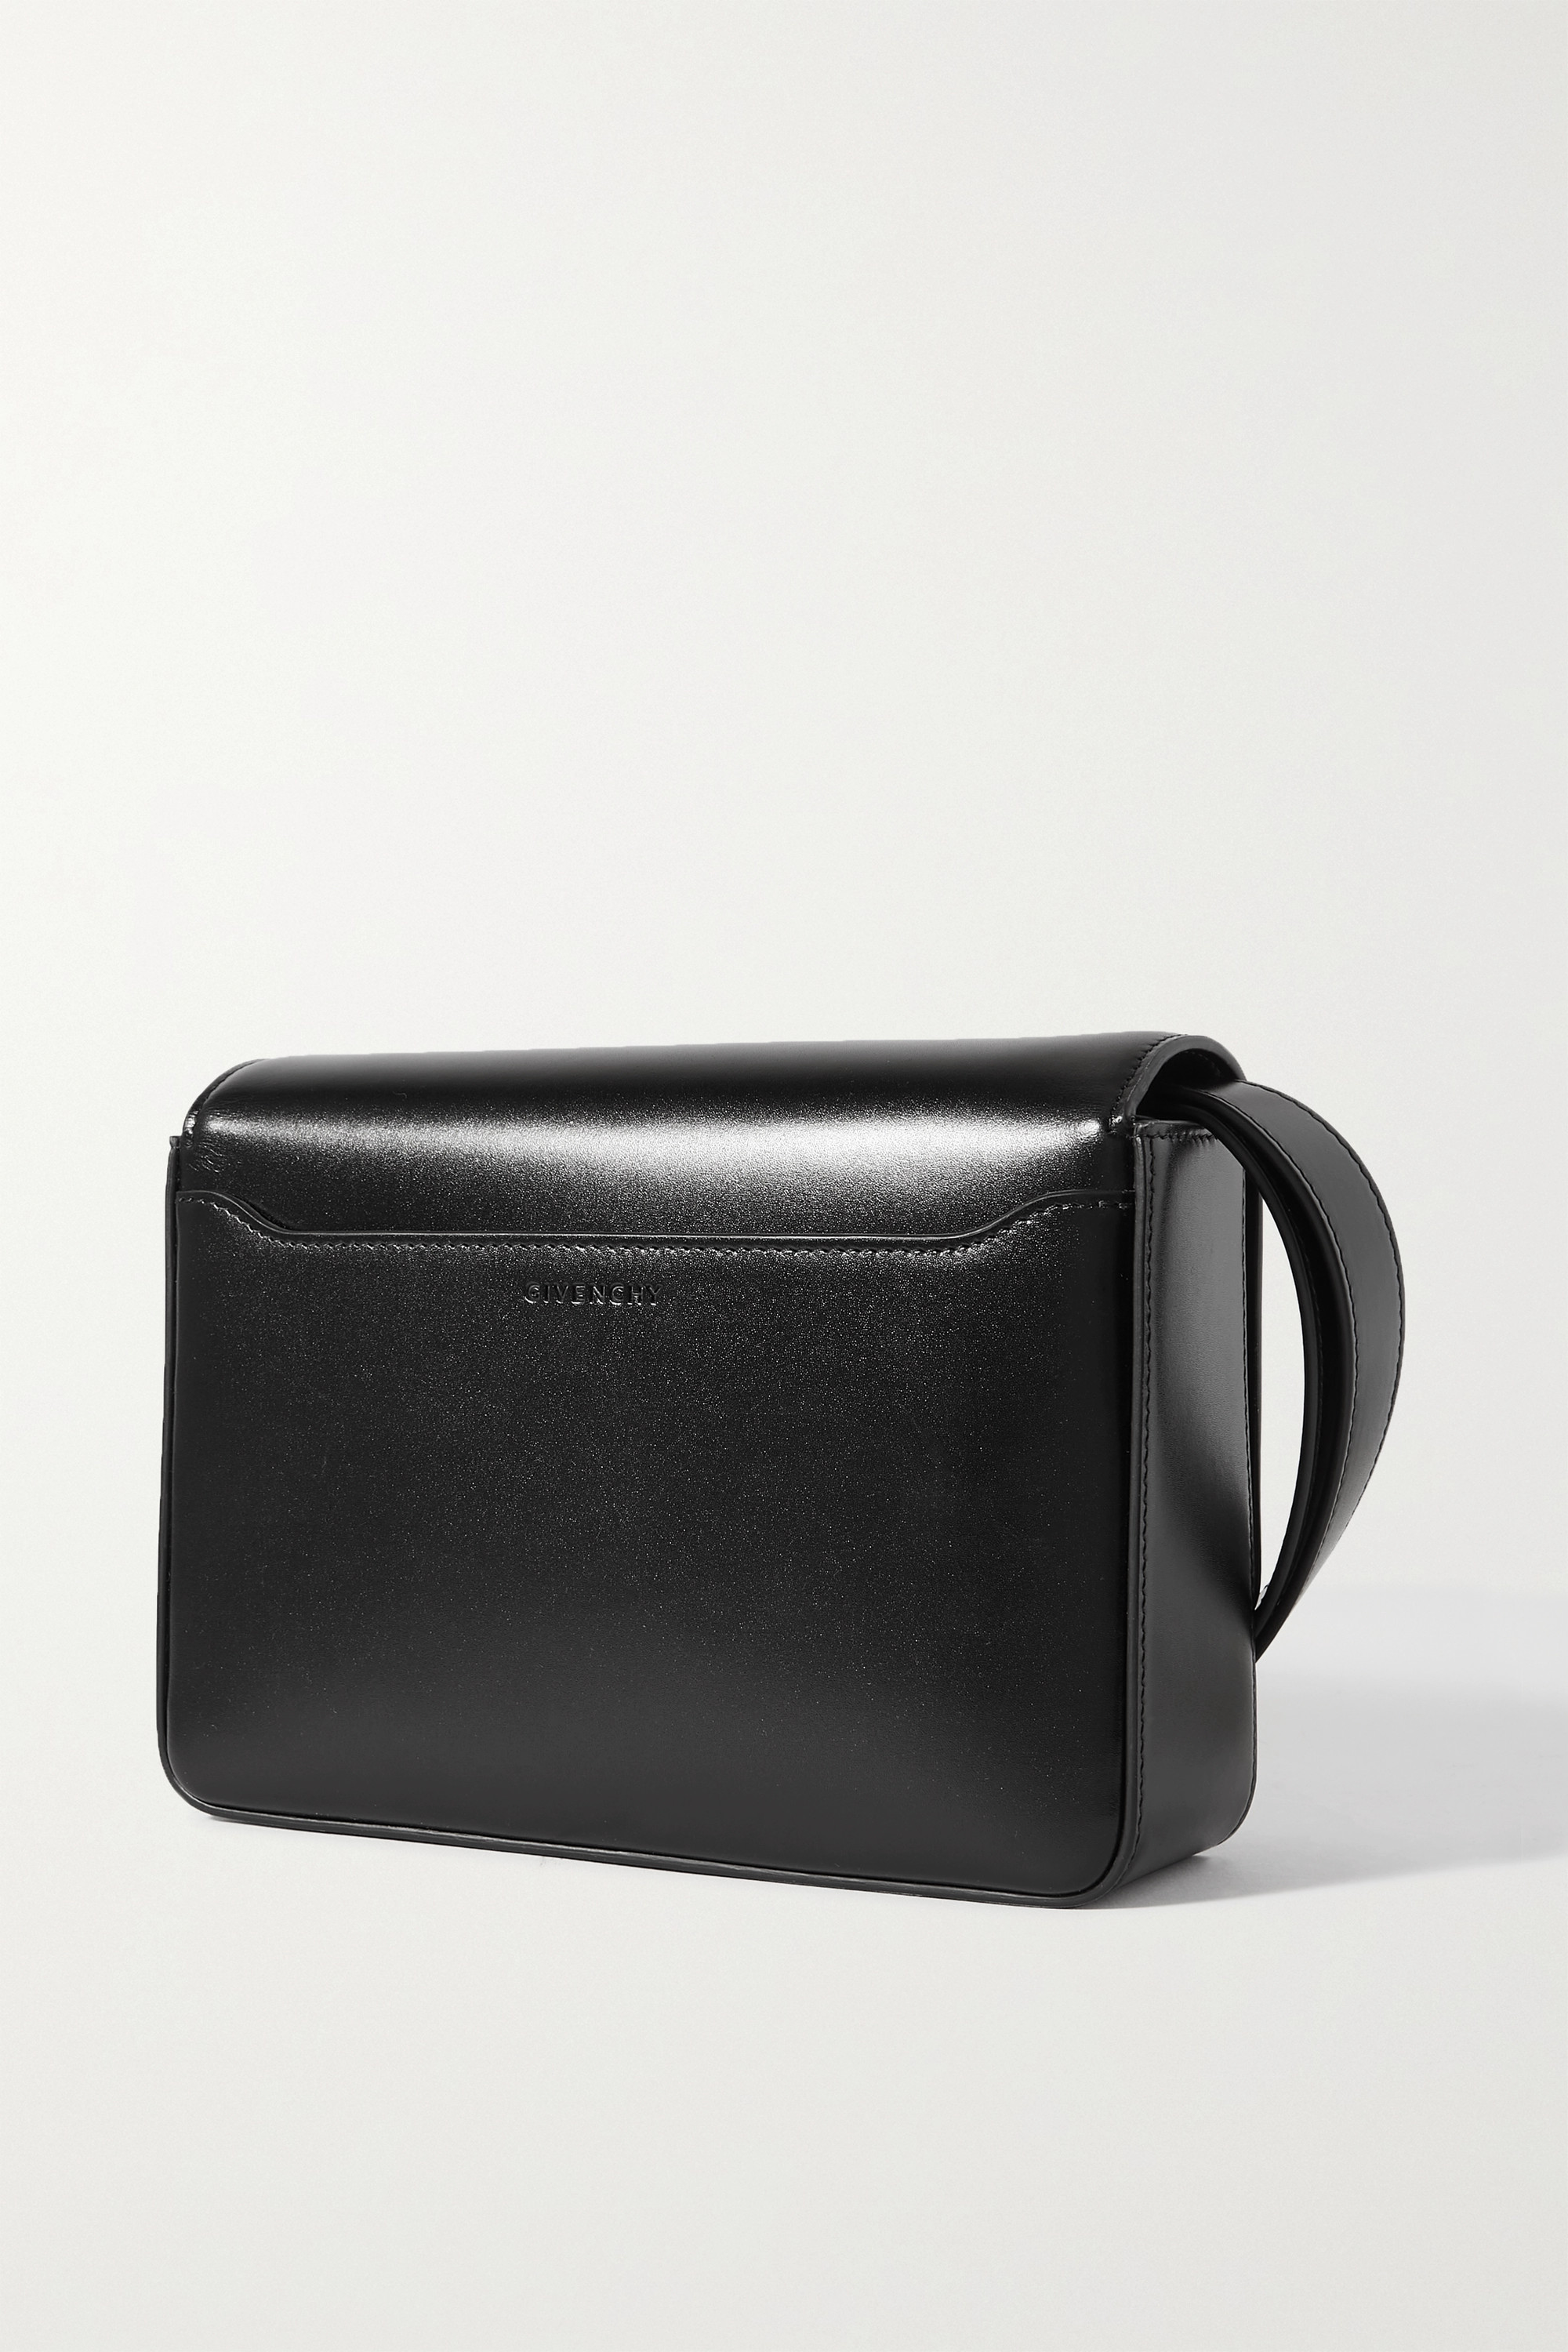 Givenchy 4G small leather shoulder bag